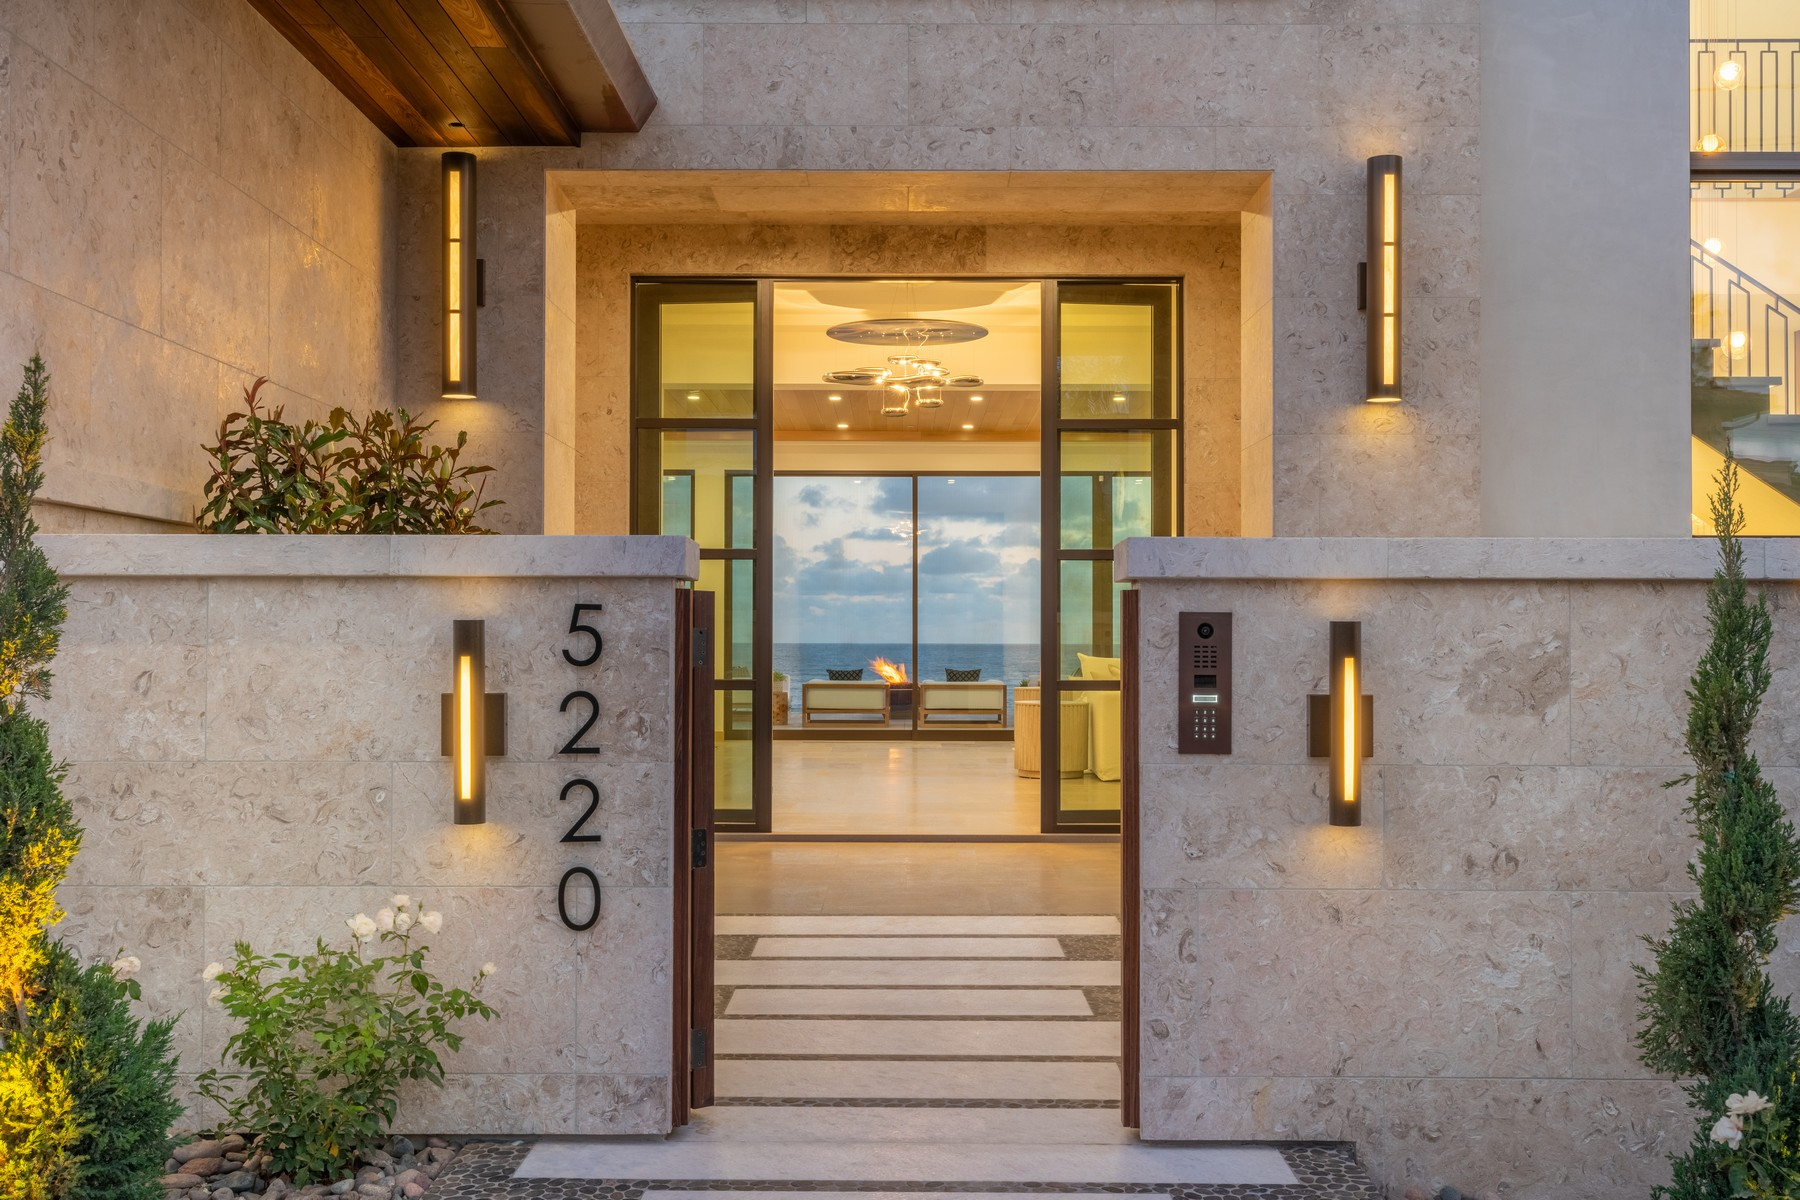 Single Family Homes for Active at 5220 Chelsea St La Jolla, California 92037 United States